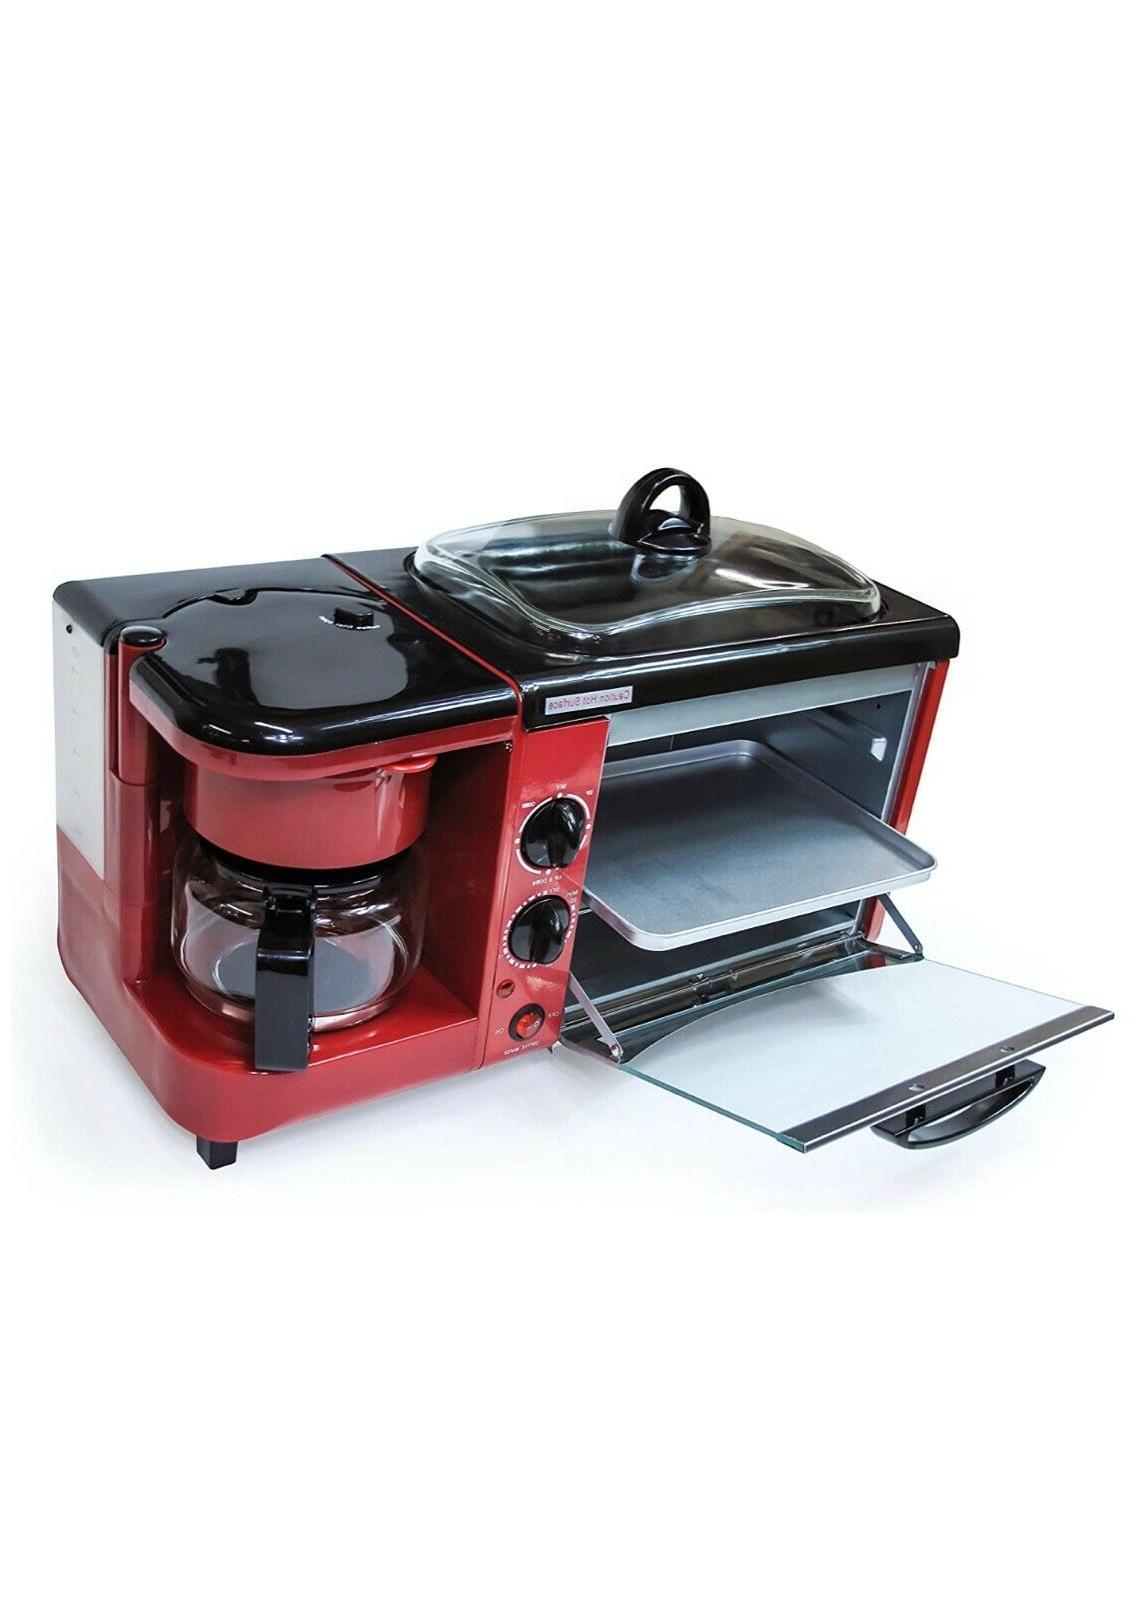 3-in-1 toaster oven, coffee